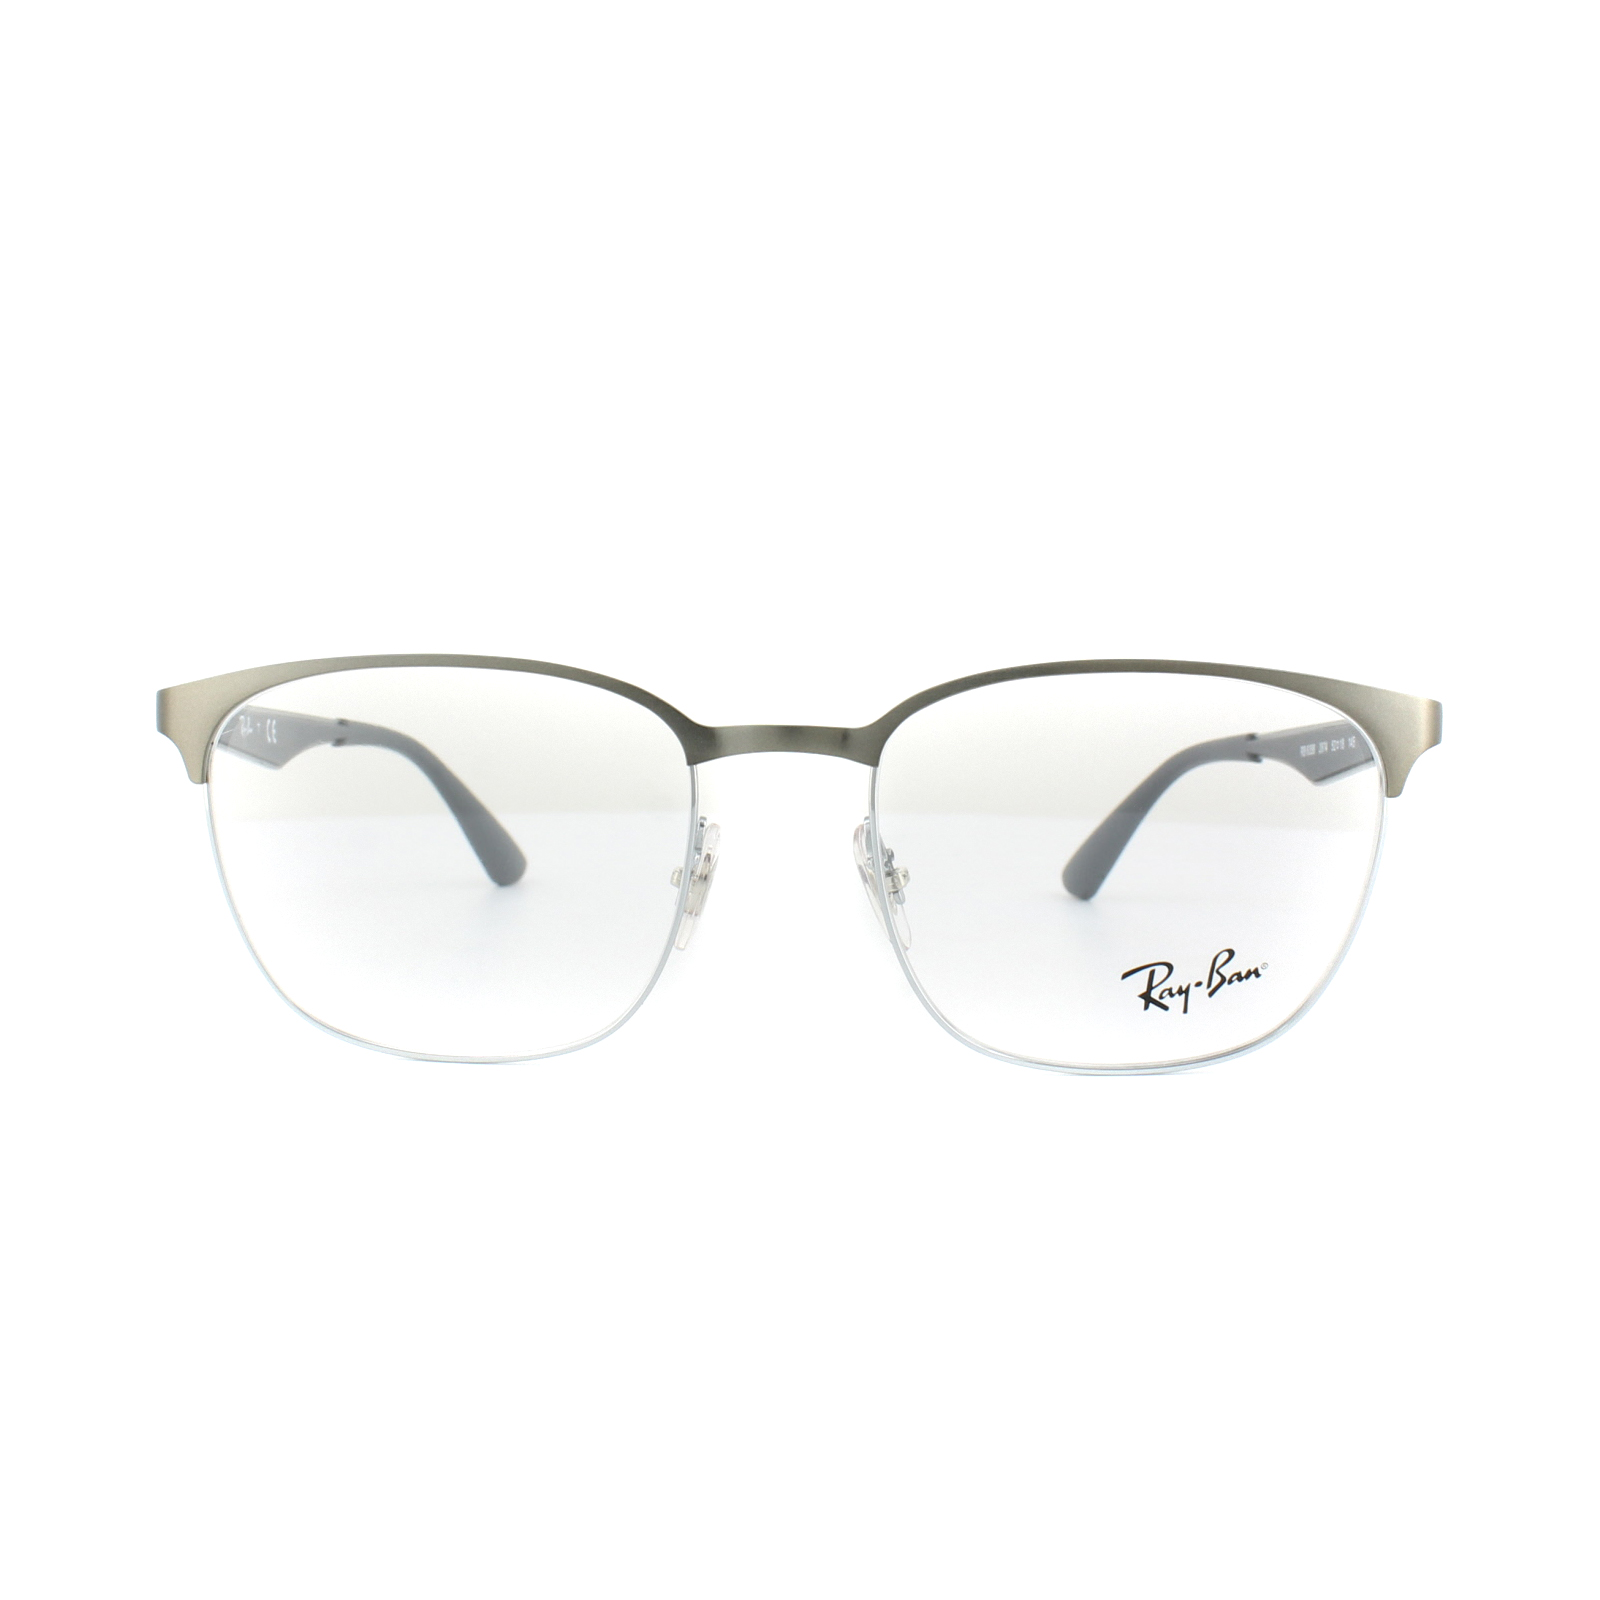 a37c3dbb94d Sentinel Ray-Ban Glasses Frames RX 6356 2874 Top Brushed Gunmetal On Silver  Mens Womens ...